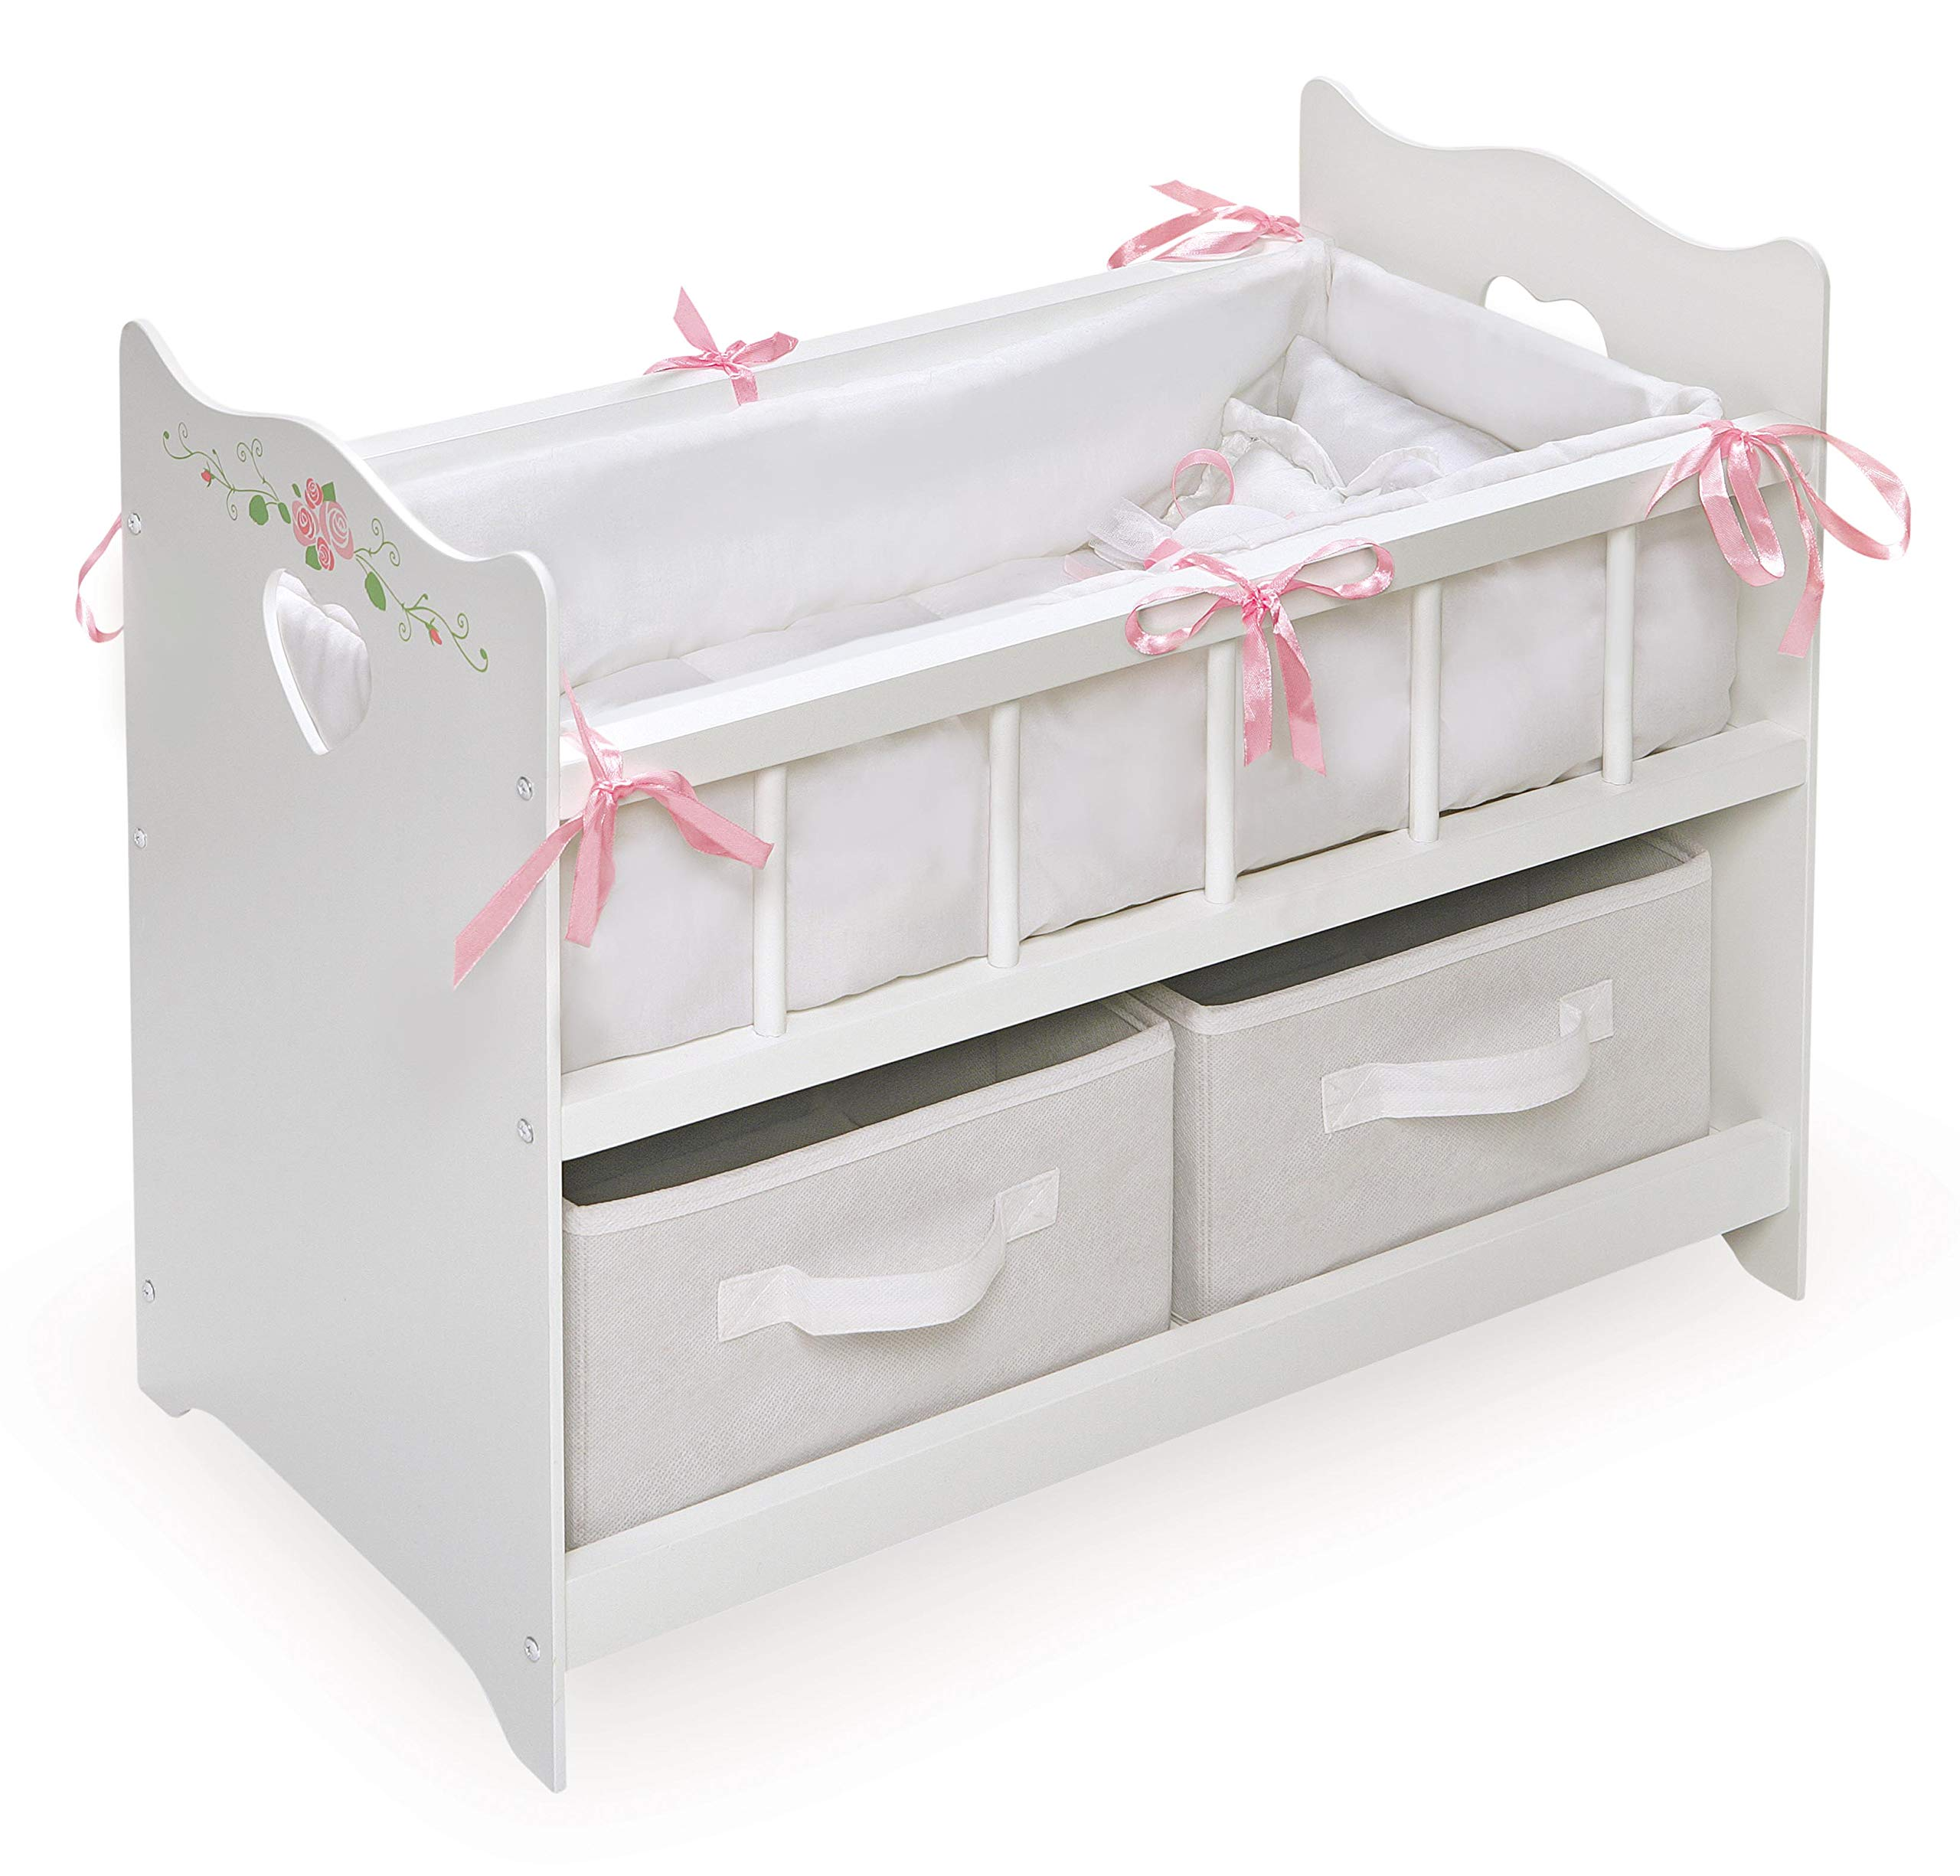 White Rose Doll Crib with Bedding, 2 Baskets, and Free Personalization Kit (fits American Girl Dolls) by Badger Basket